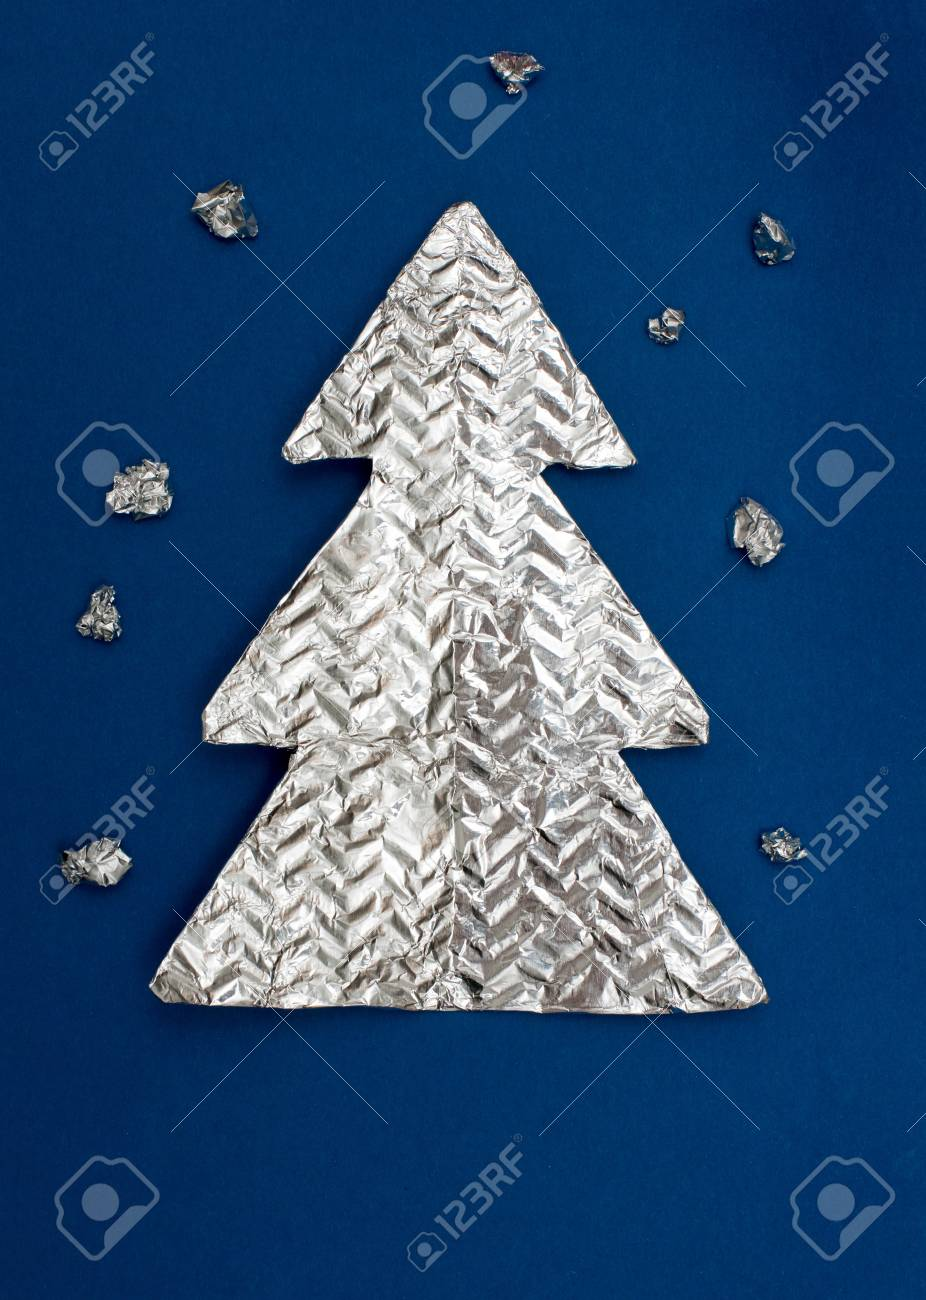 Foil Christmas Tree.Christmas Tree Made Out Of Foil